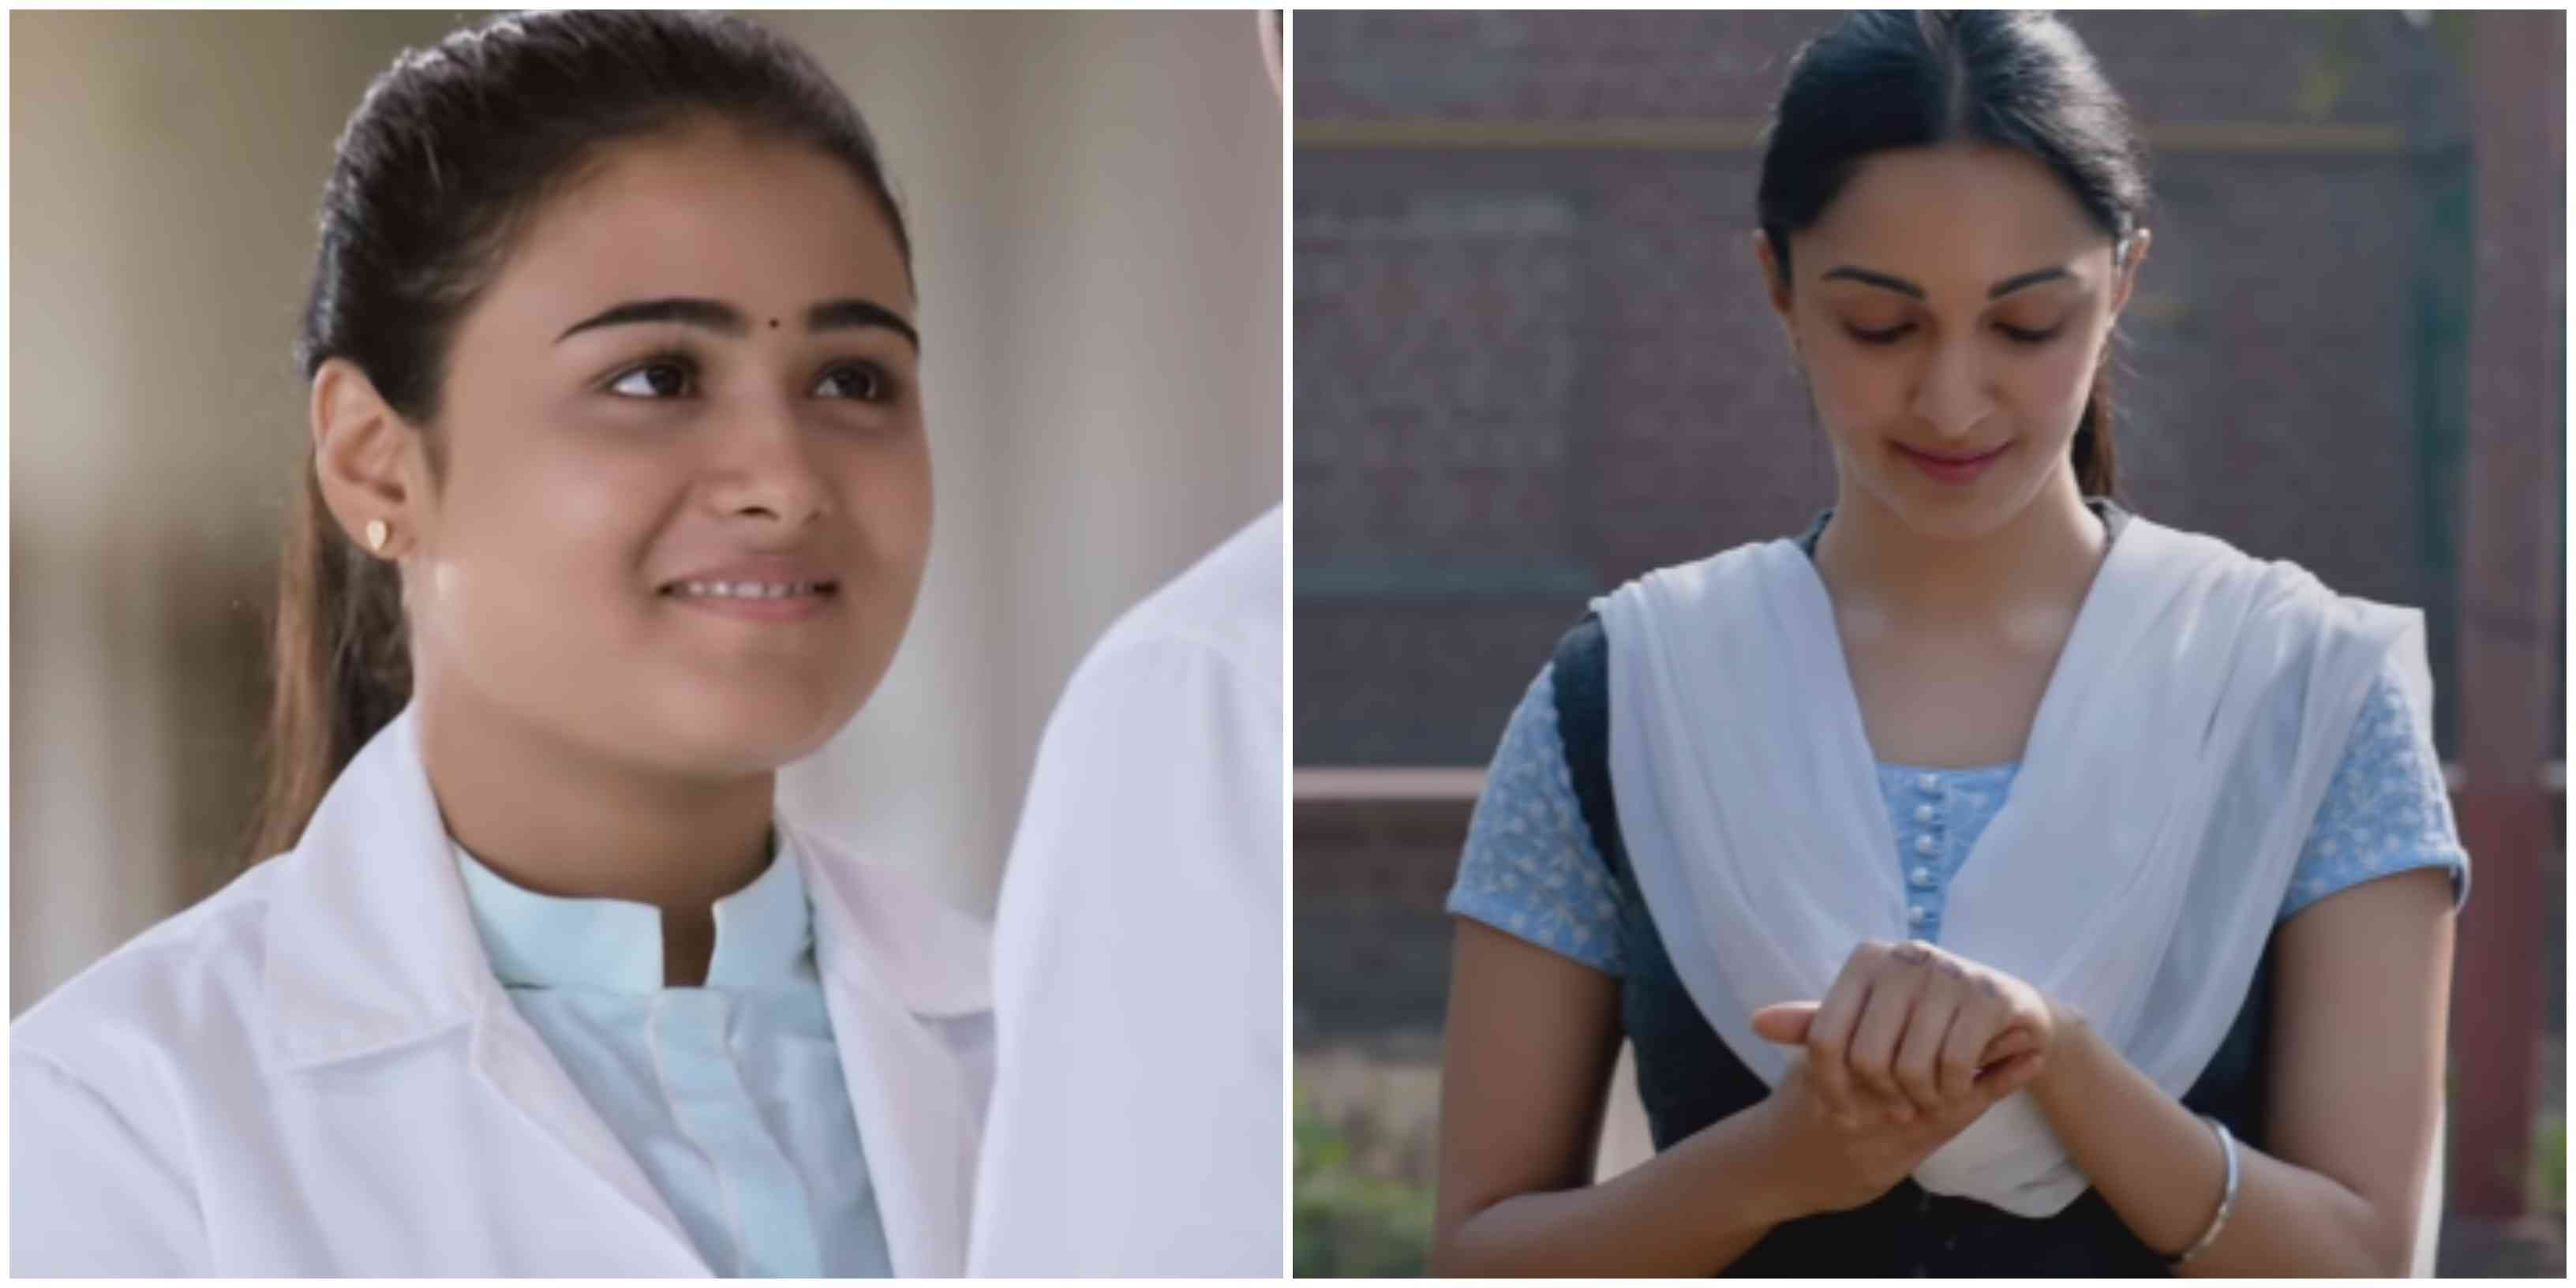 Shalini Pandey (left) in 'Arjun Reddy' and Kiara Advani in 'Kabir Singh'. Courtesy: Bhadrakali Pictures/Cine1 Studios/T-Series.